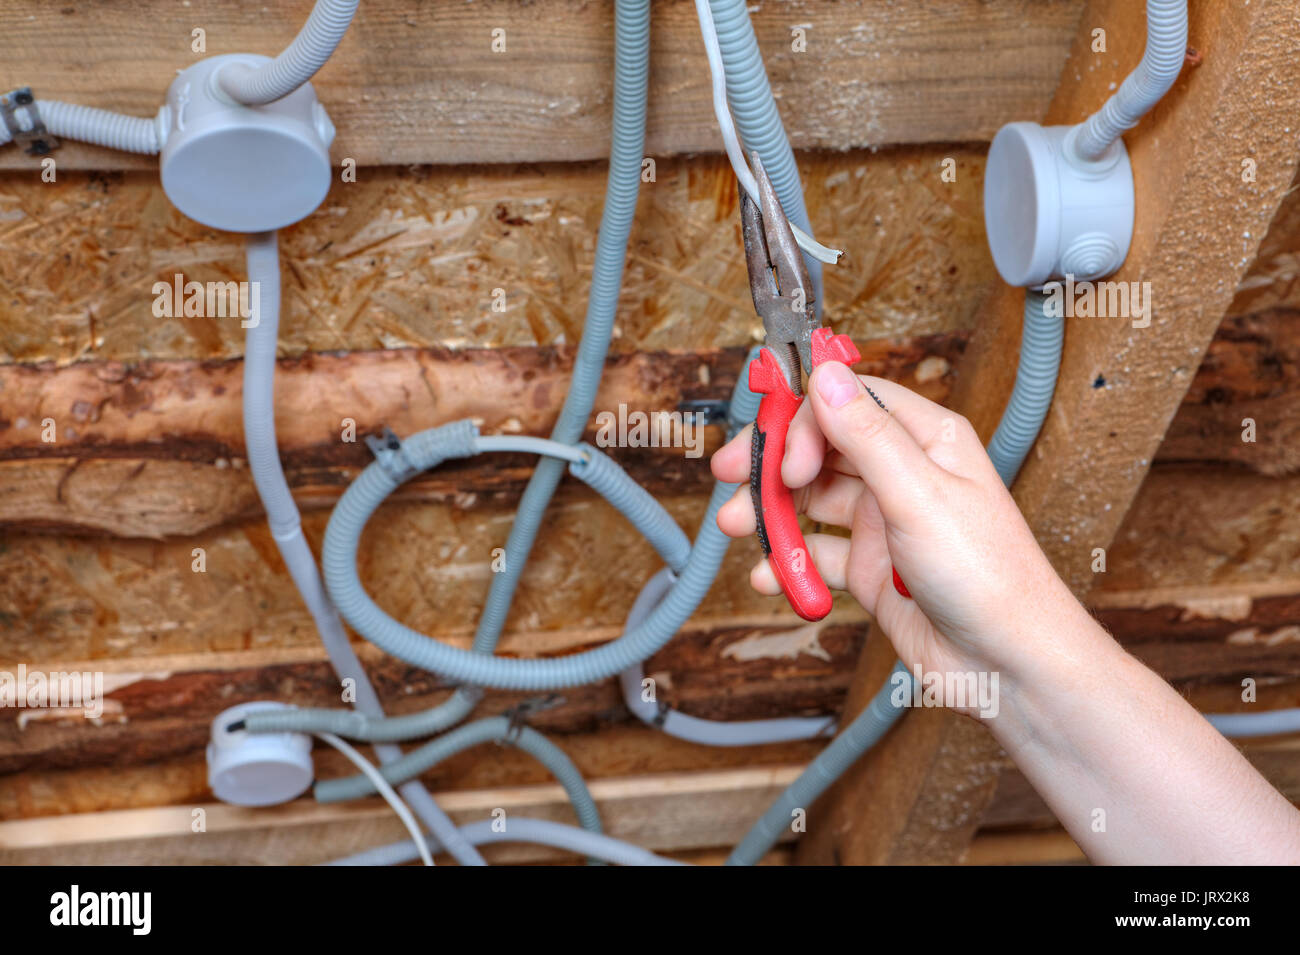 Tremendous An Electrician Hand With Pliers During Installation Mount Light Wiring 101 Mentrastrewellnesstrialsorg